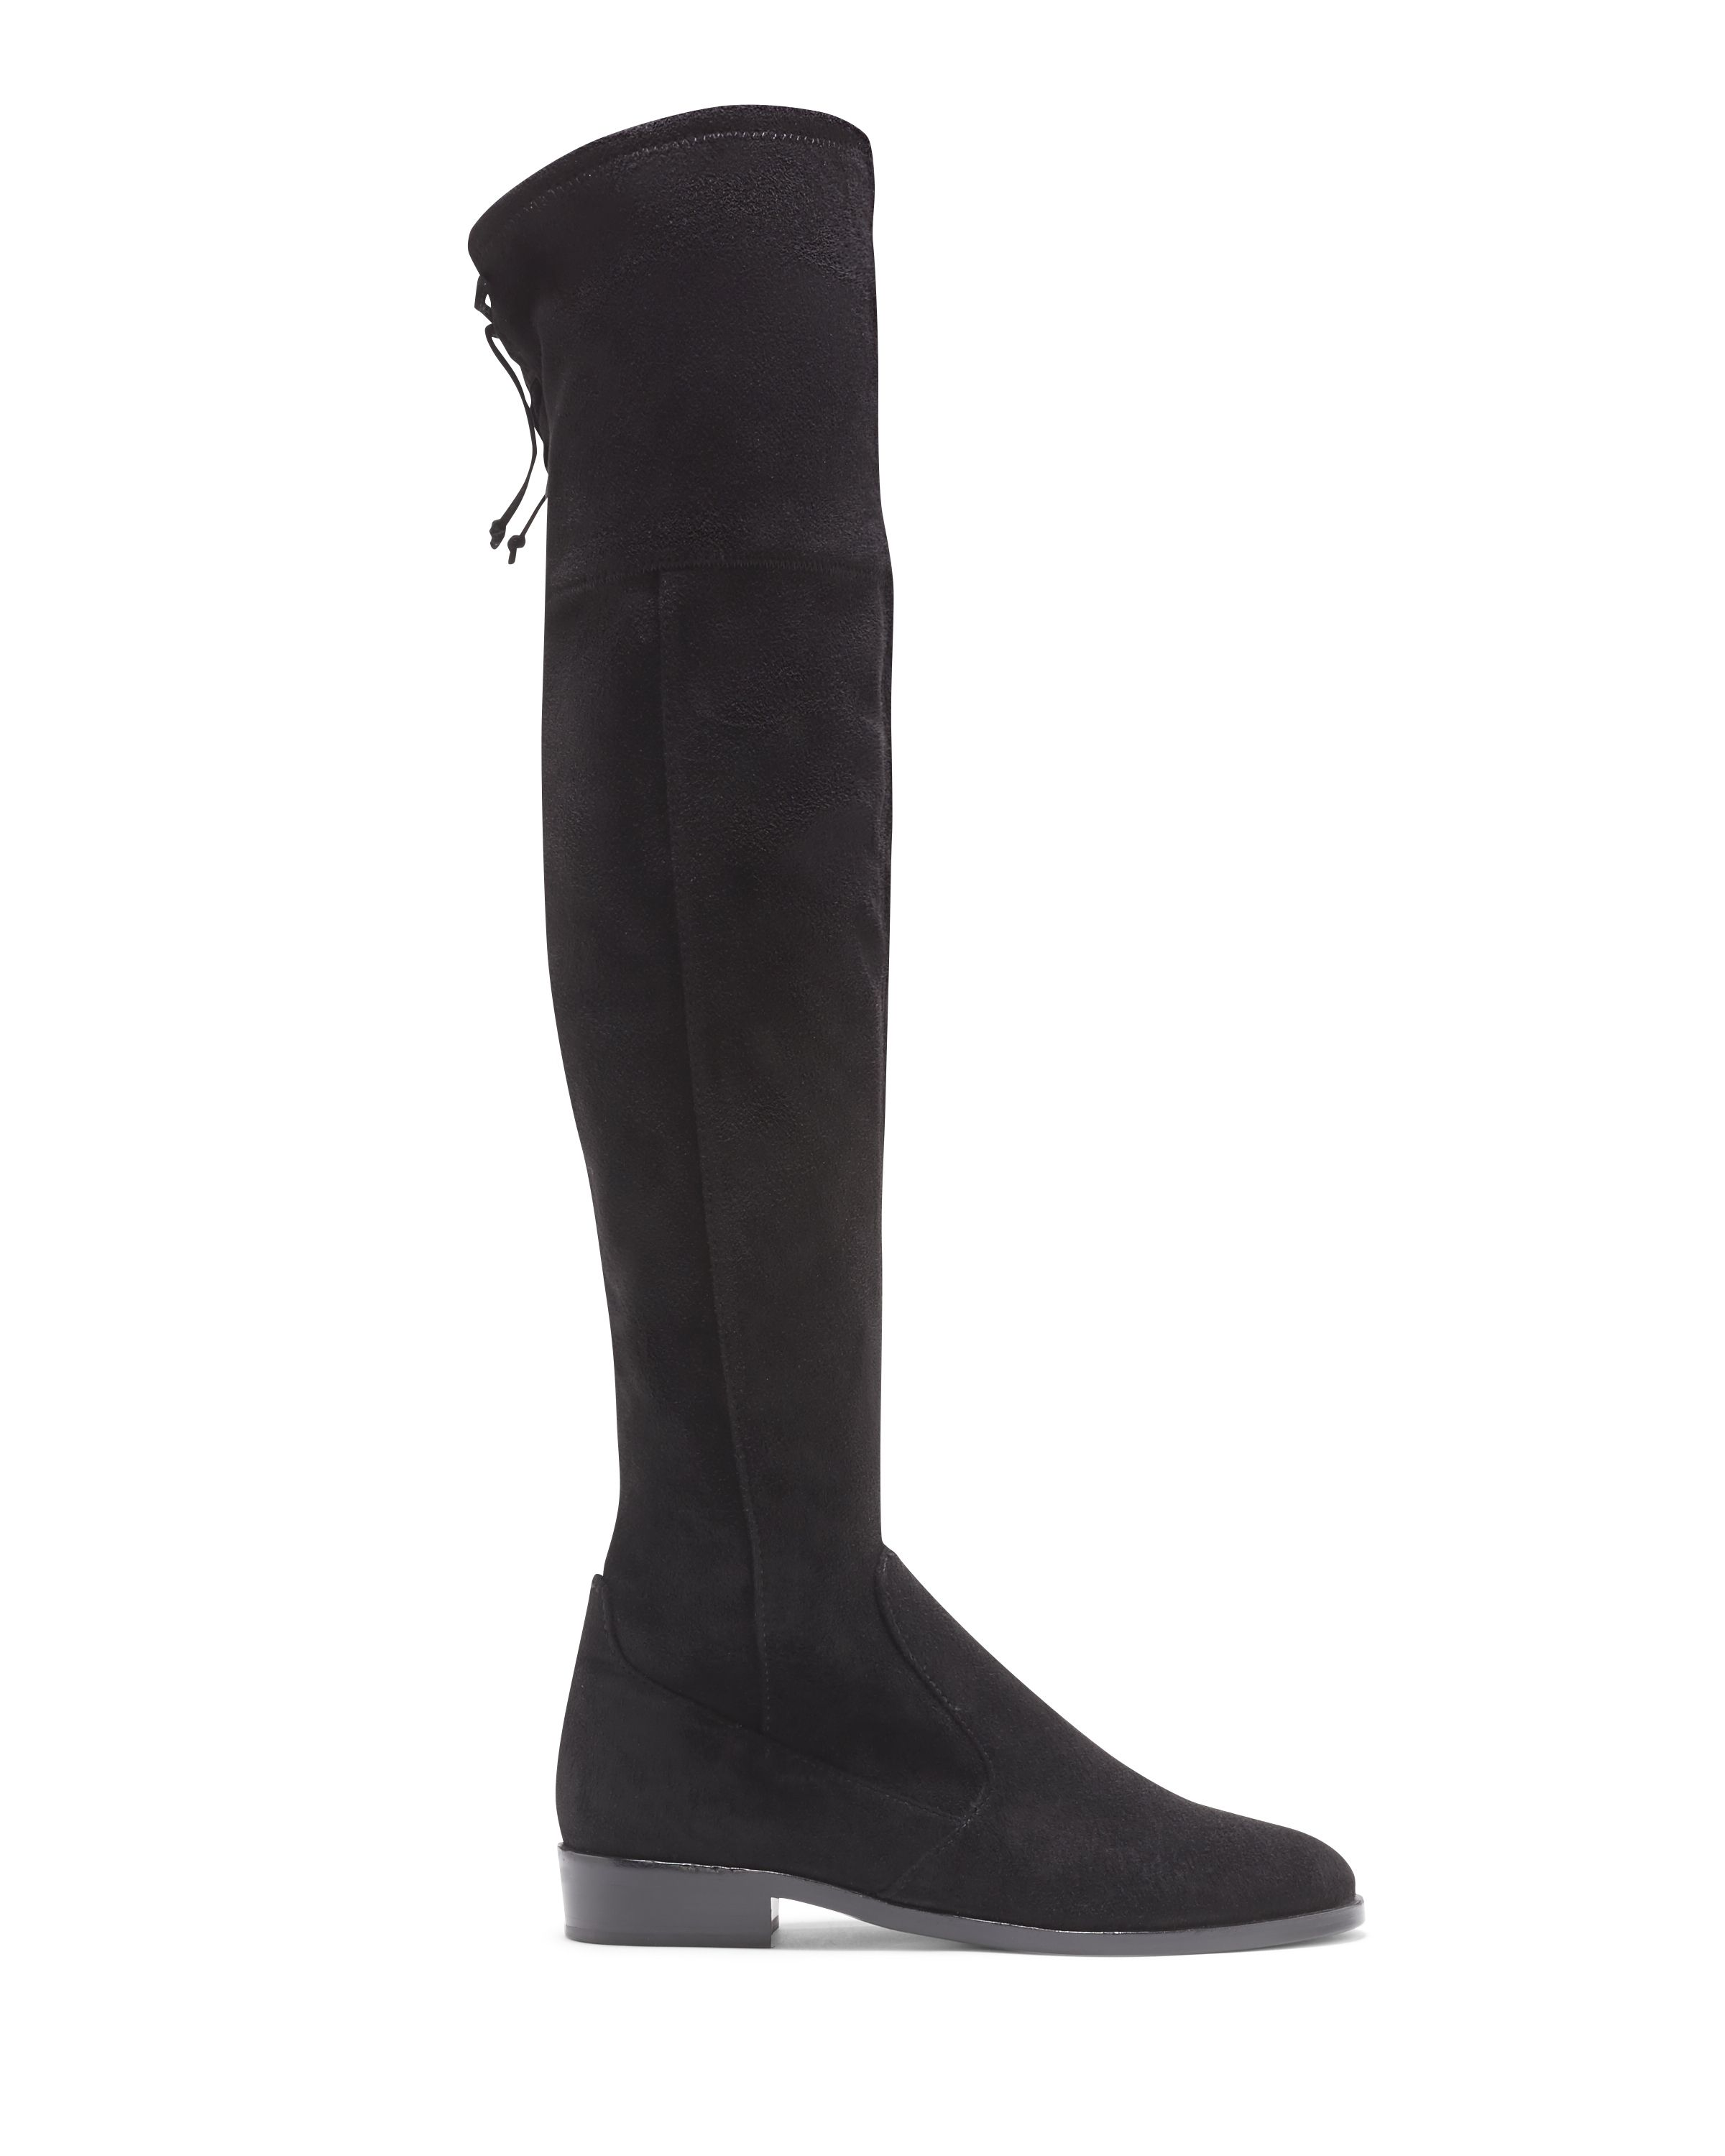 49d9deec49a ... exclusively at VinceCamuto.com and Vince Camuto Retail stores. The  flat-heel Crisintha boot makes it mark with an over-the-knee shaft and a  deliciously ...